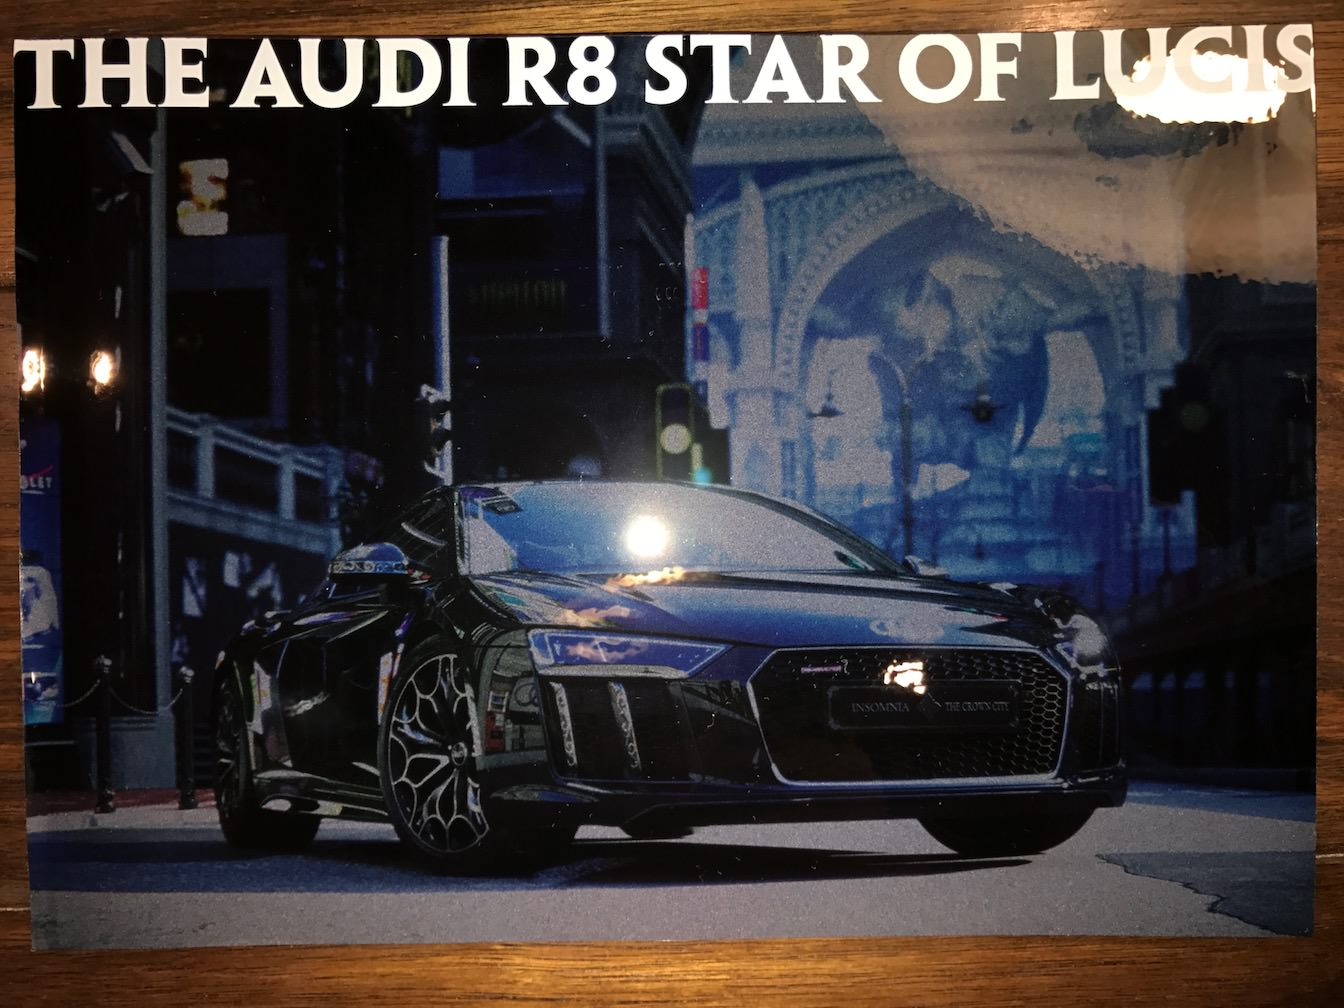 The audi r8 star of lucis concept book review 5